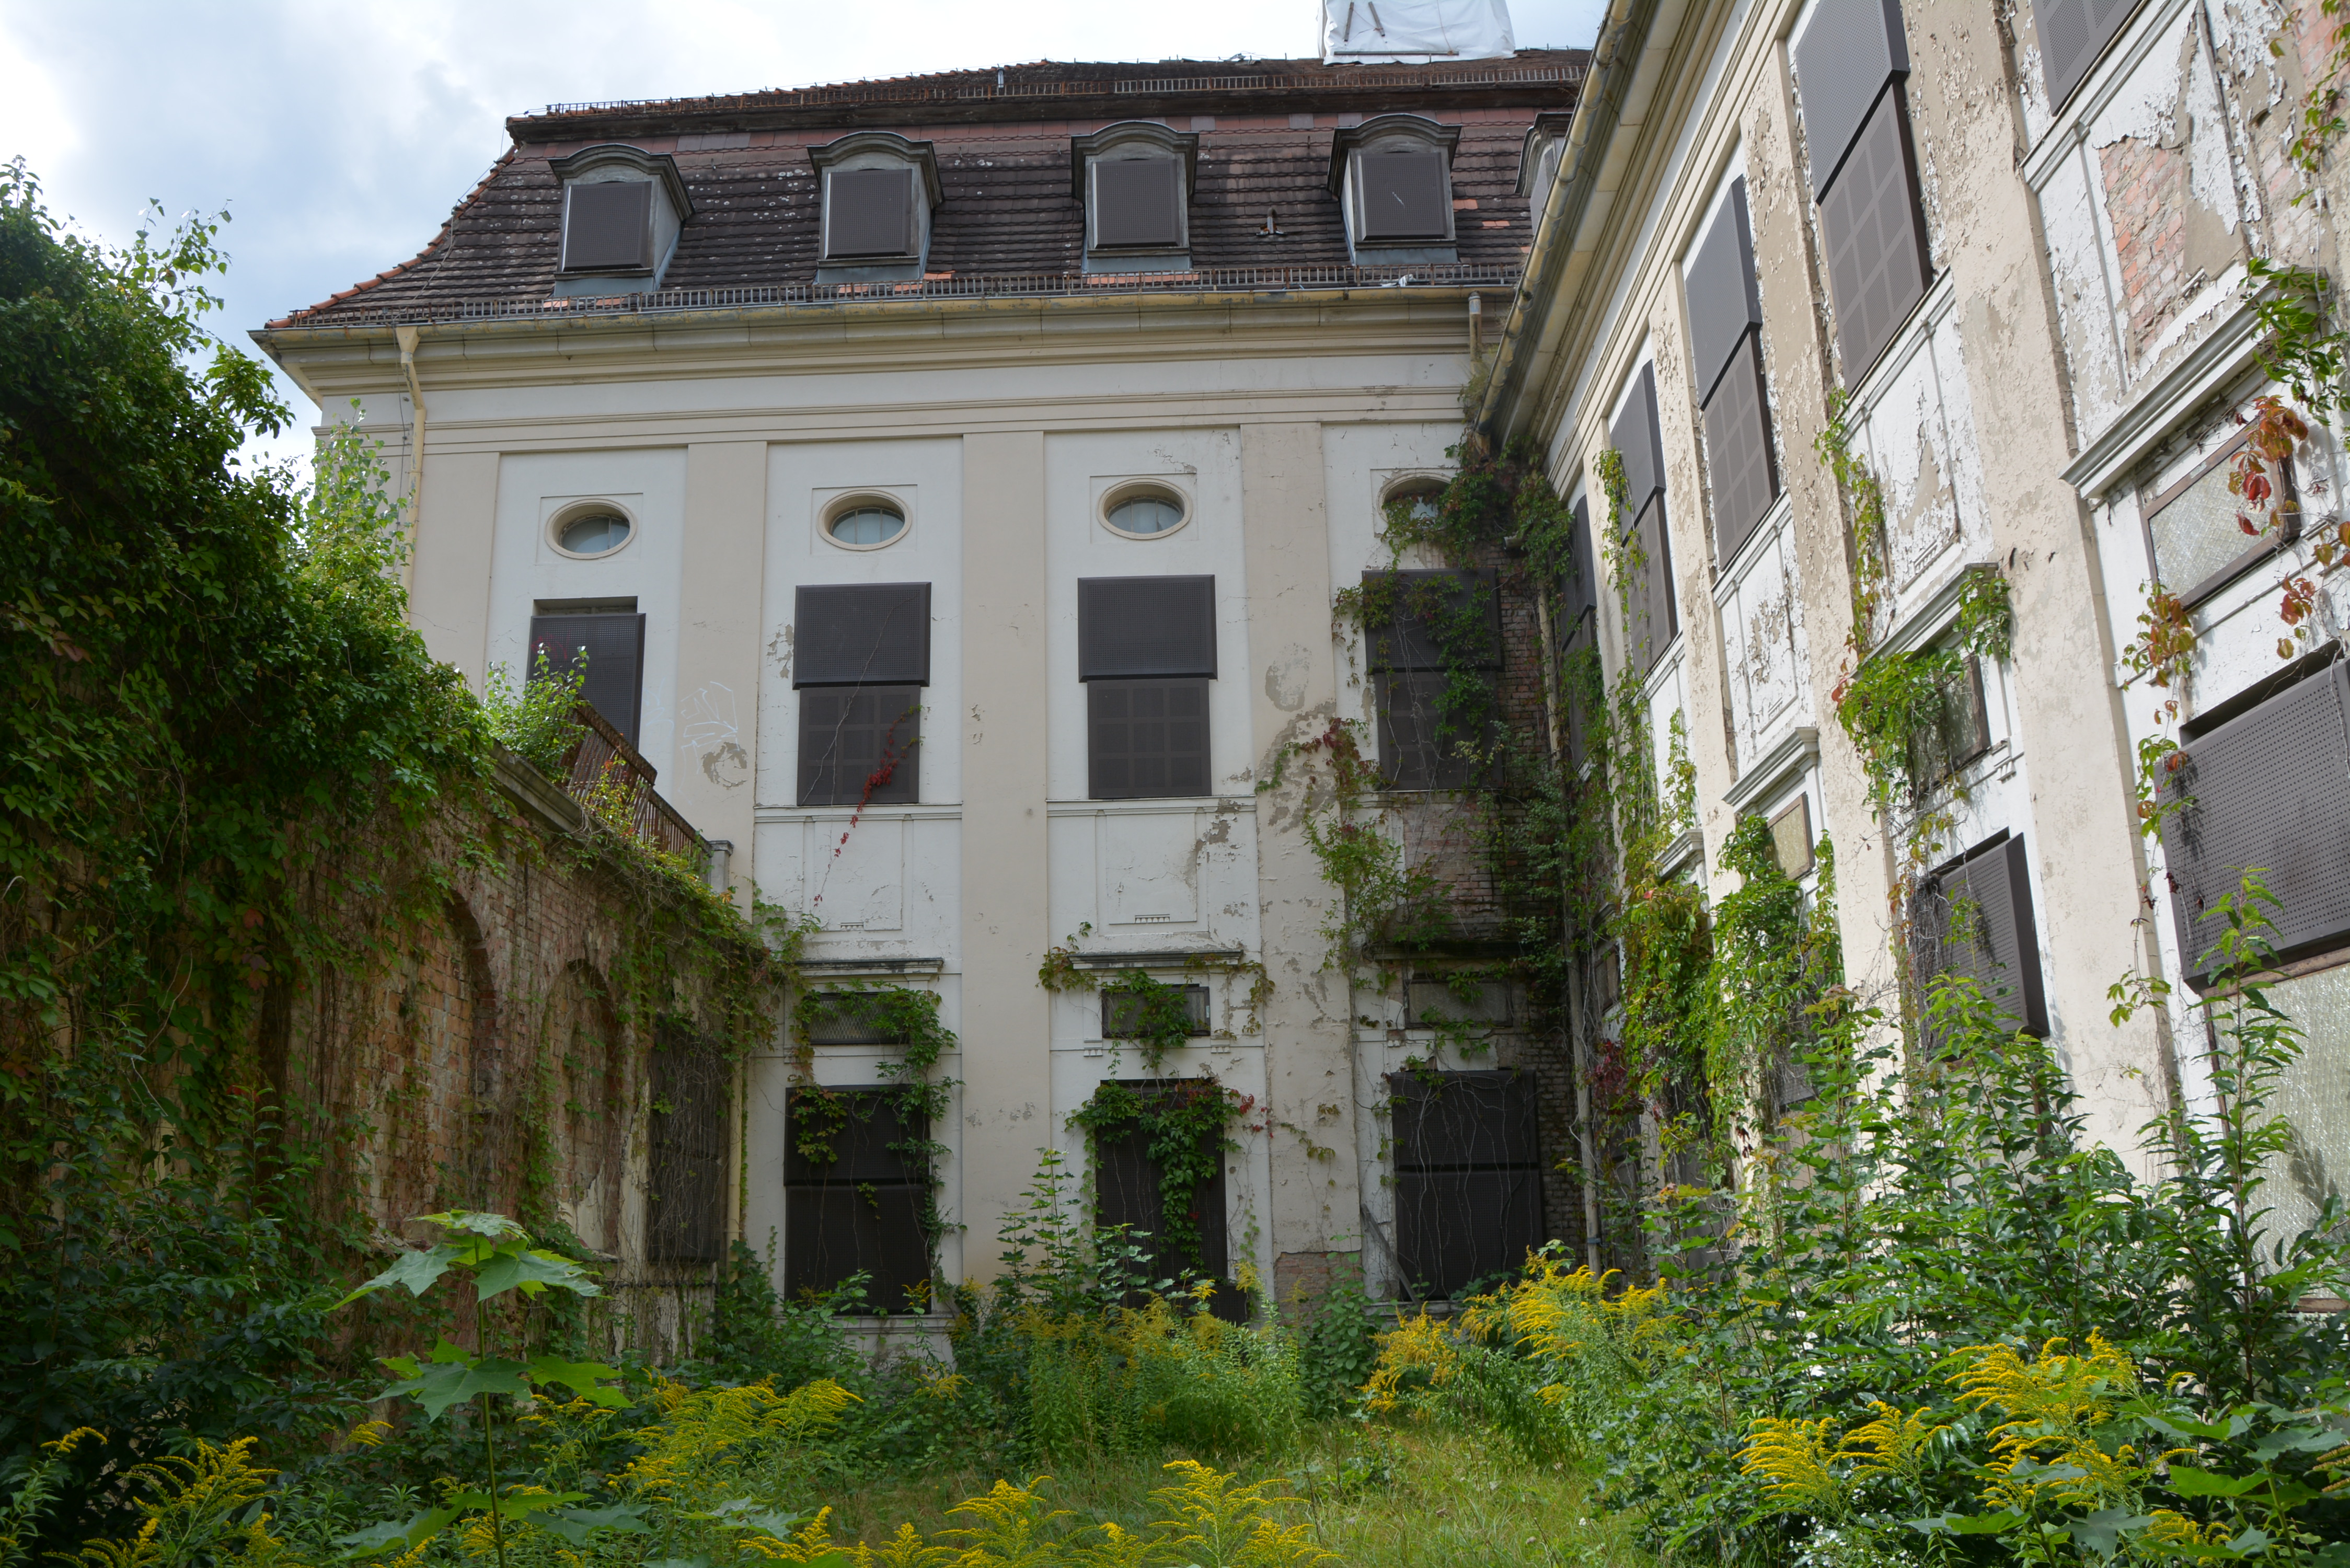 Abandoned Places in Berlin Waldhaus Buch Abandoned Sanatorium Garden Courtyard